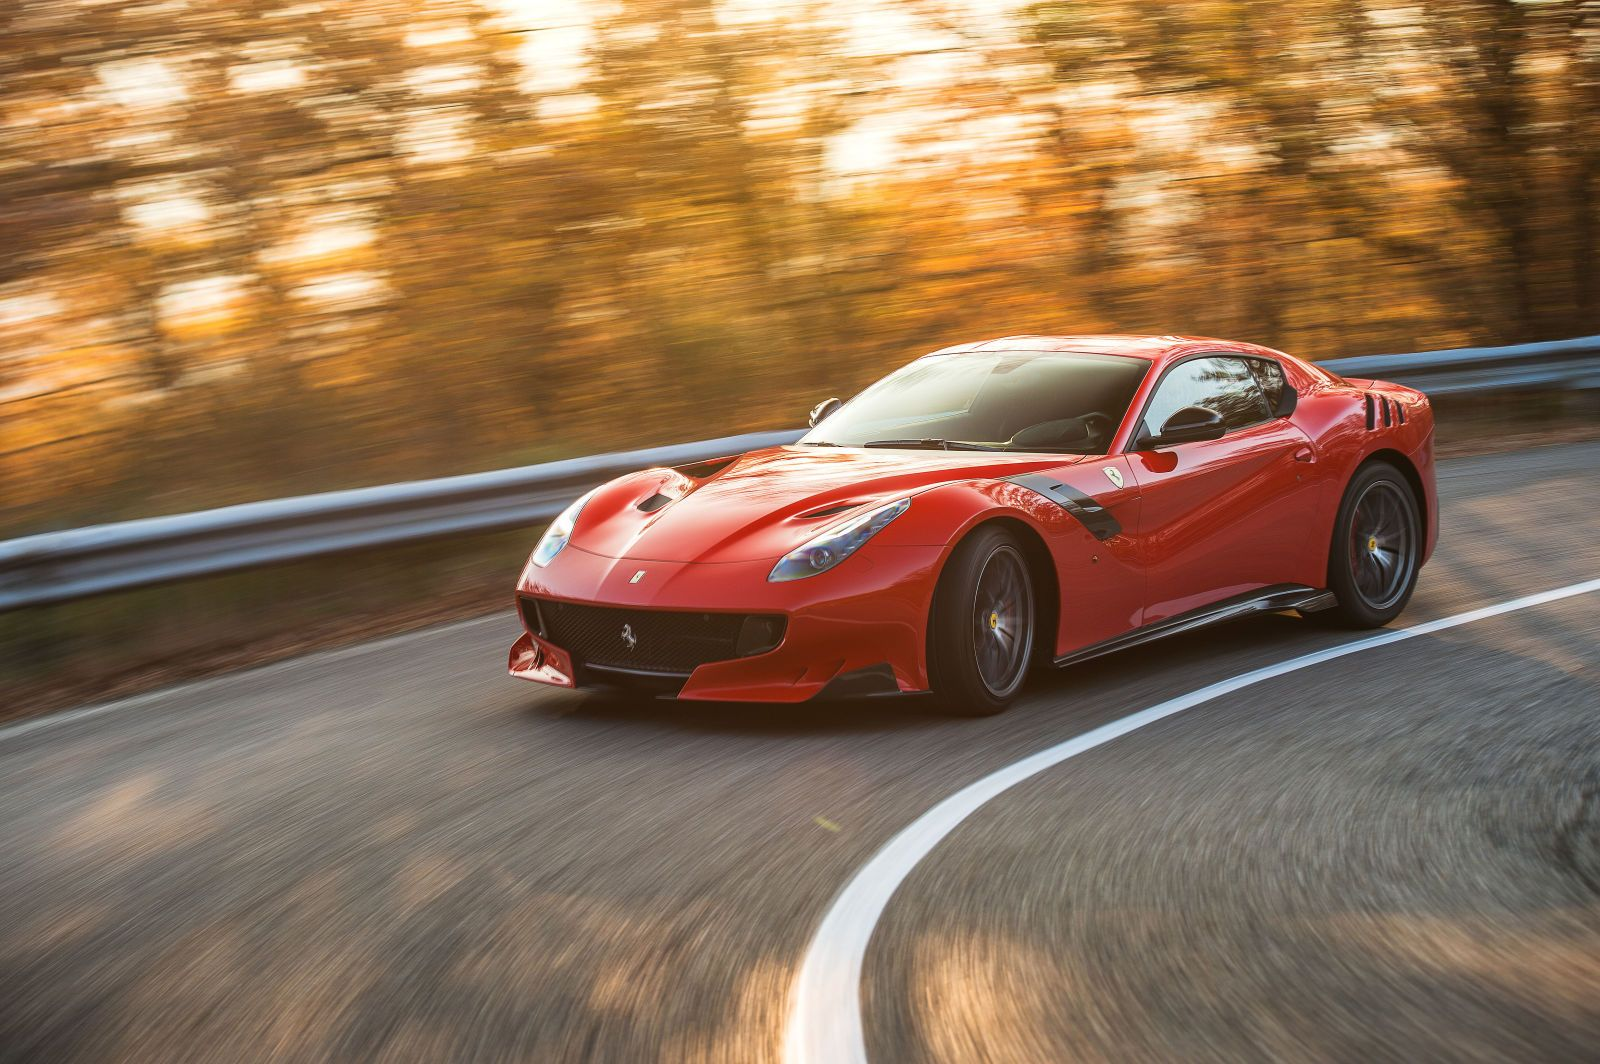 The Ferrari F12tdf Is A 770 Horsepower Throwback To The Supercar